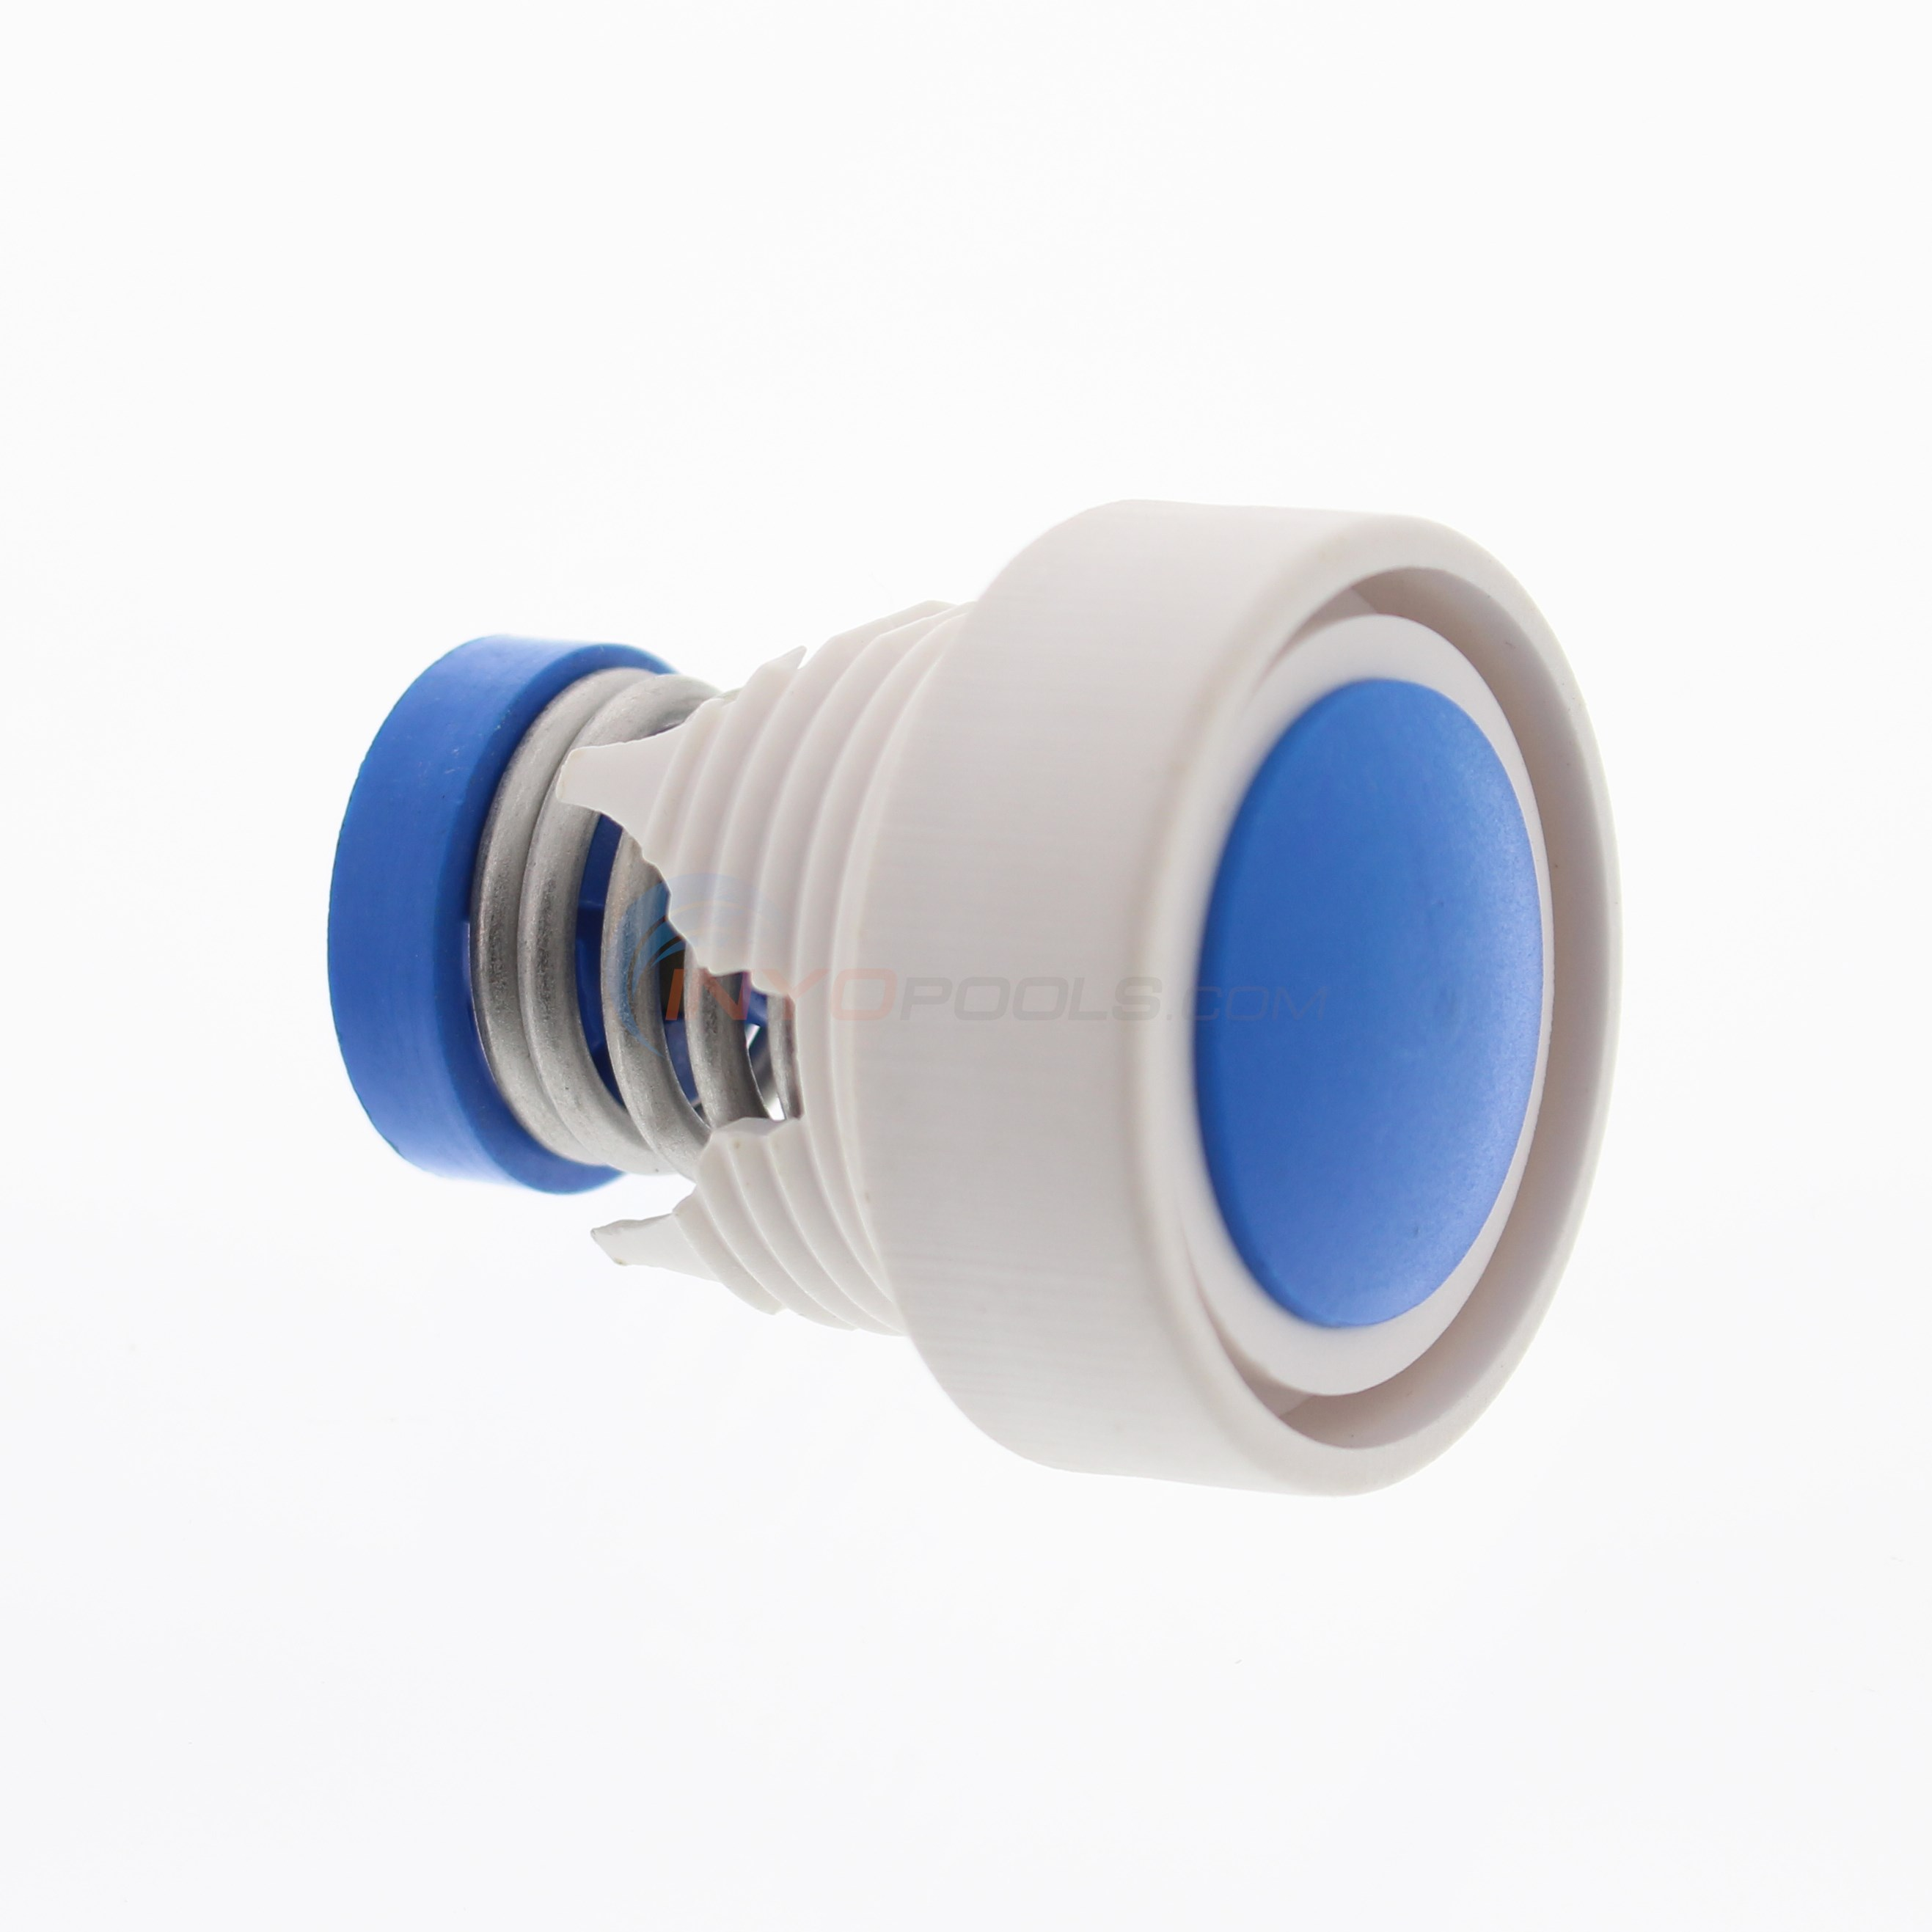 PRESSURE RELIEF VALVE F/WALL FITTING